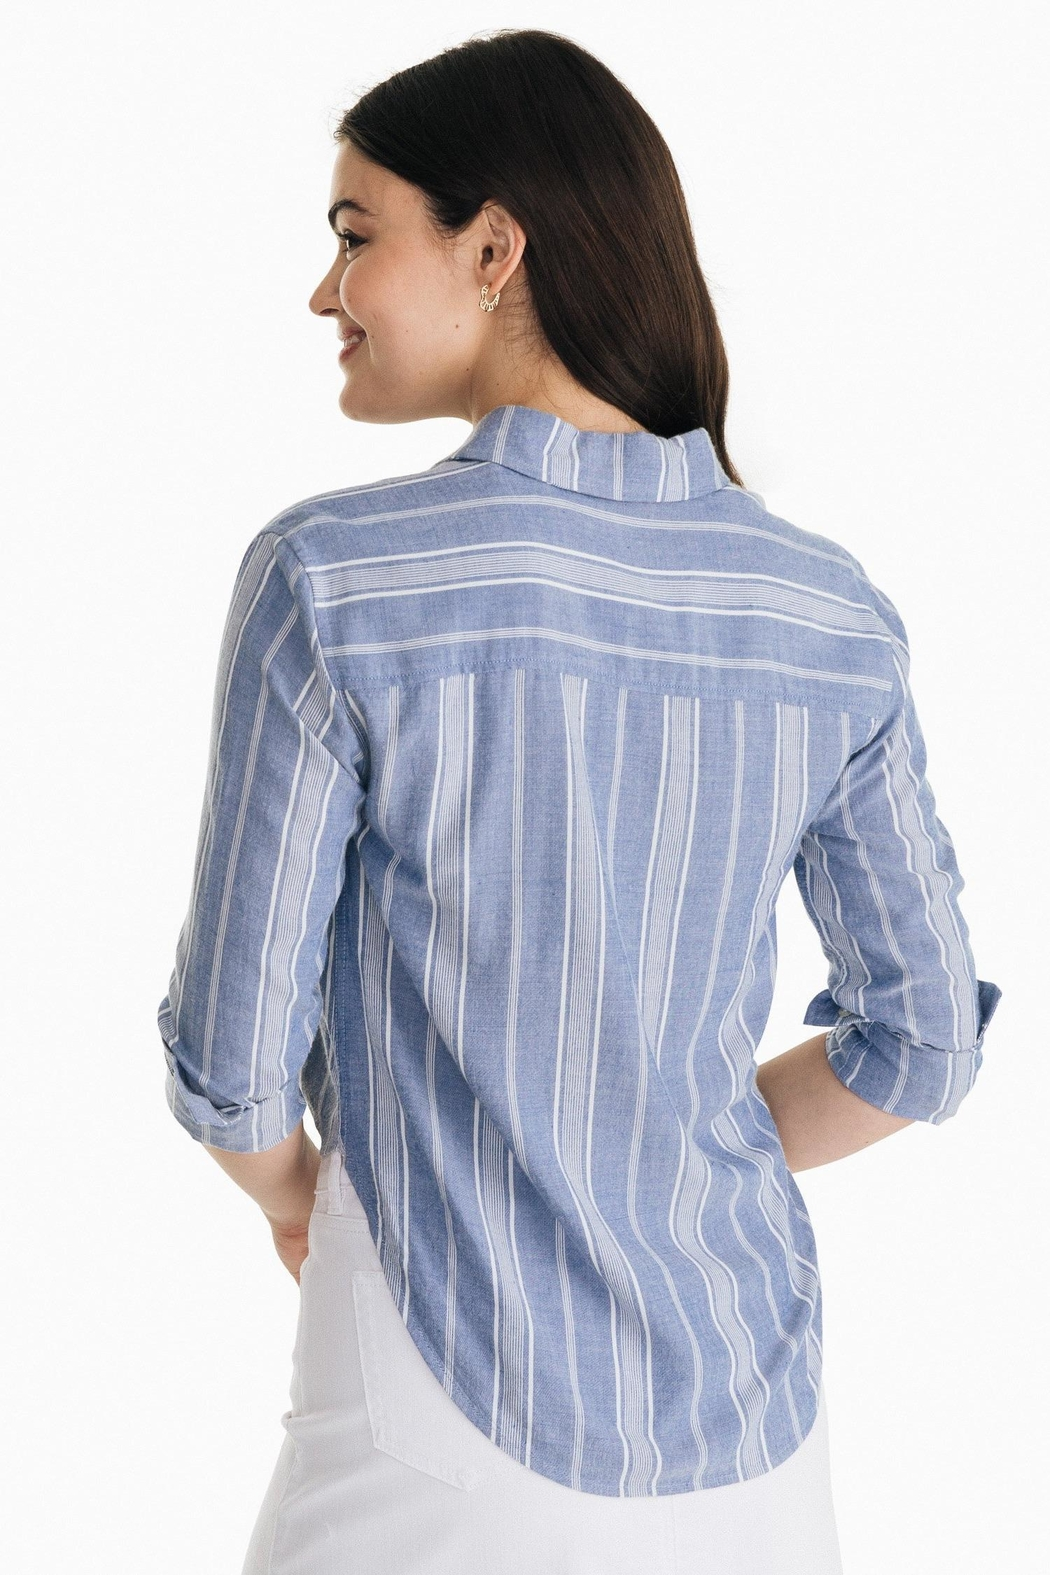 Southern Tide Madelyn Tie-Front Shirt - Front Full Image